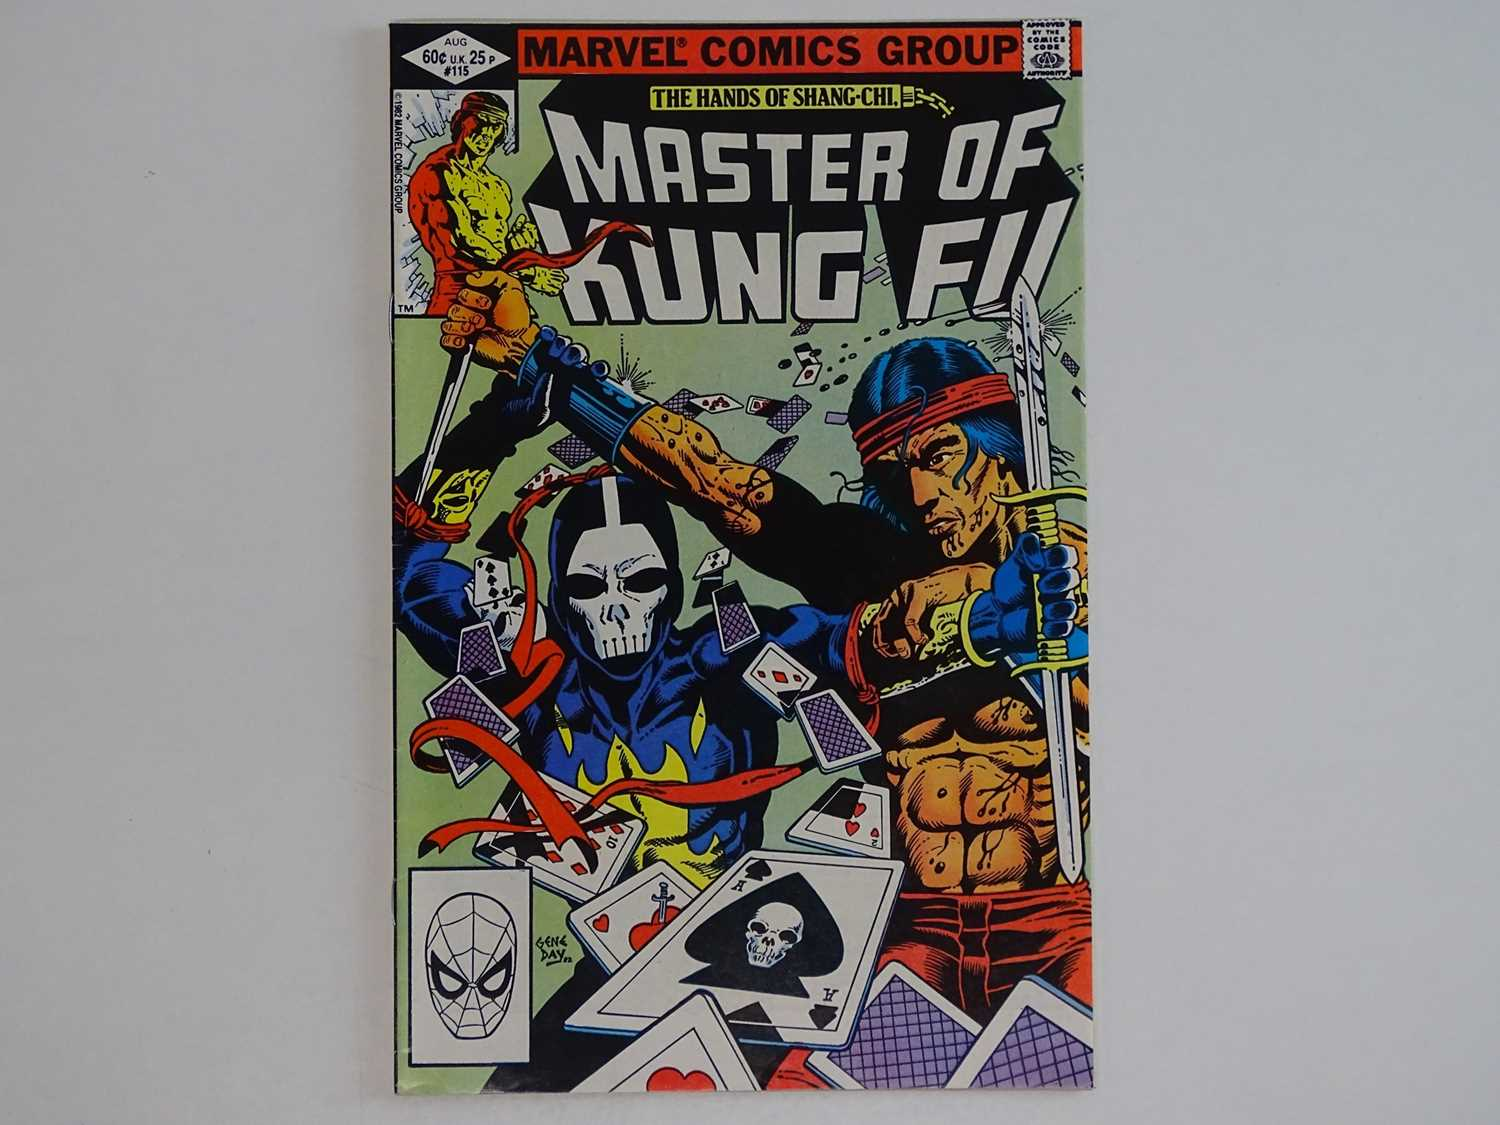 HANDS OF SHANG-CHI: MASTER OF KUNG FU #115 - (1982 - MARVEL) - Modern KEY - First appearance of